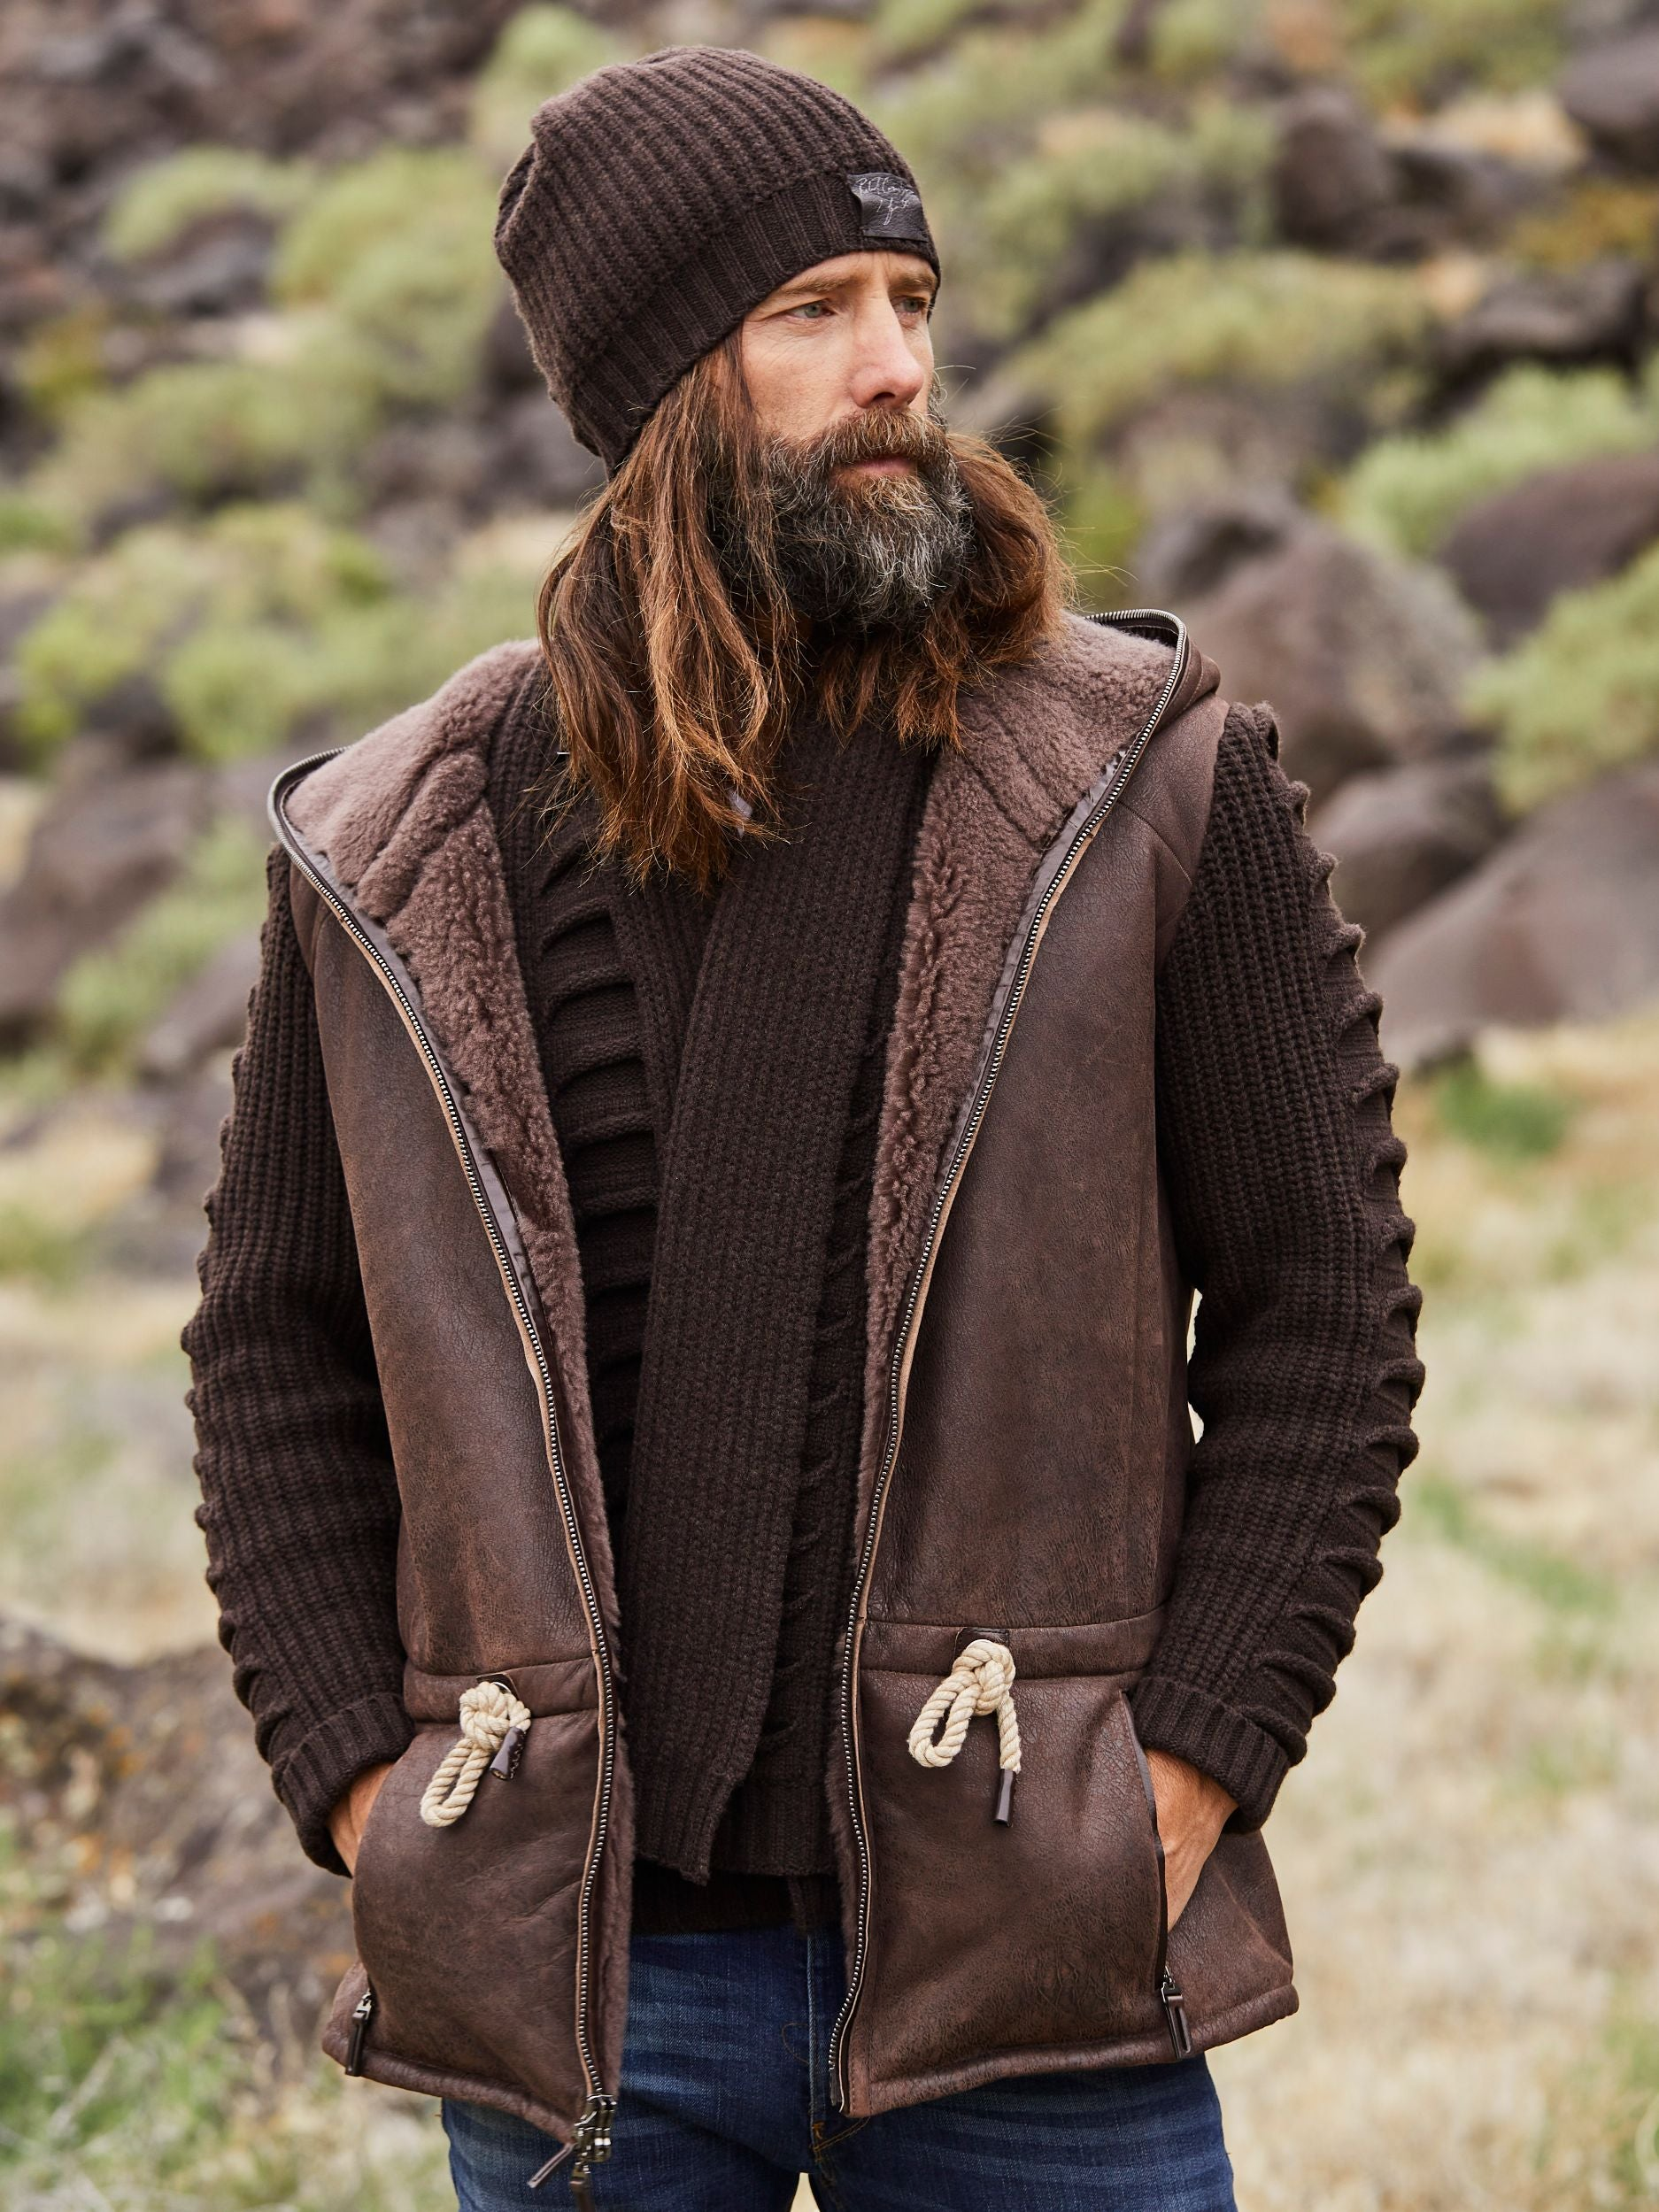 A harmonious melding of mélange cashmere sleeves emanating from an Italian shearling of impossible softness